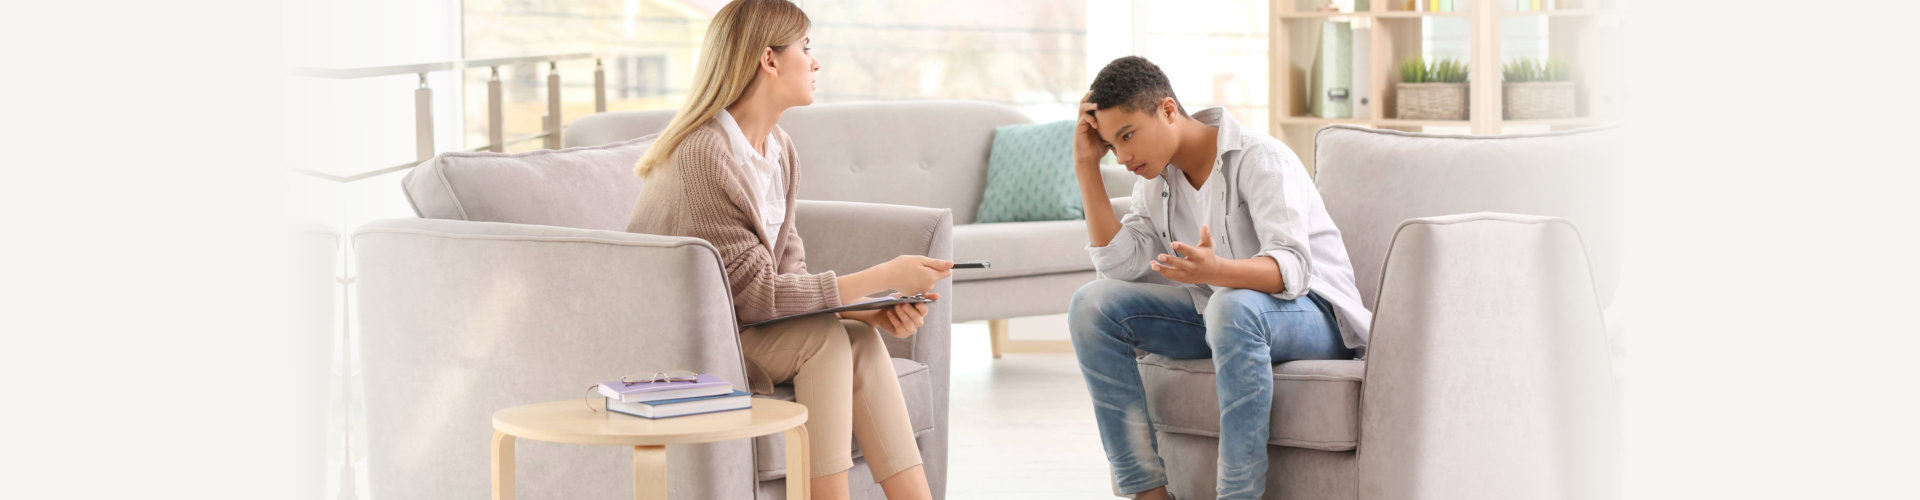 female therapist doing counseling to her teen client